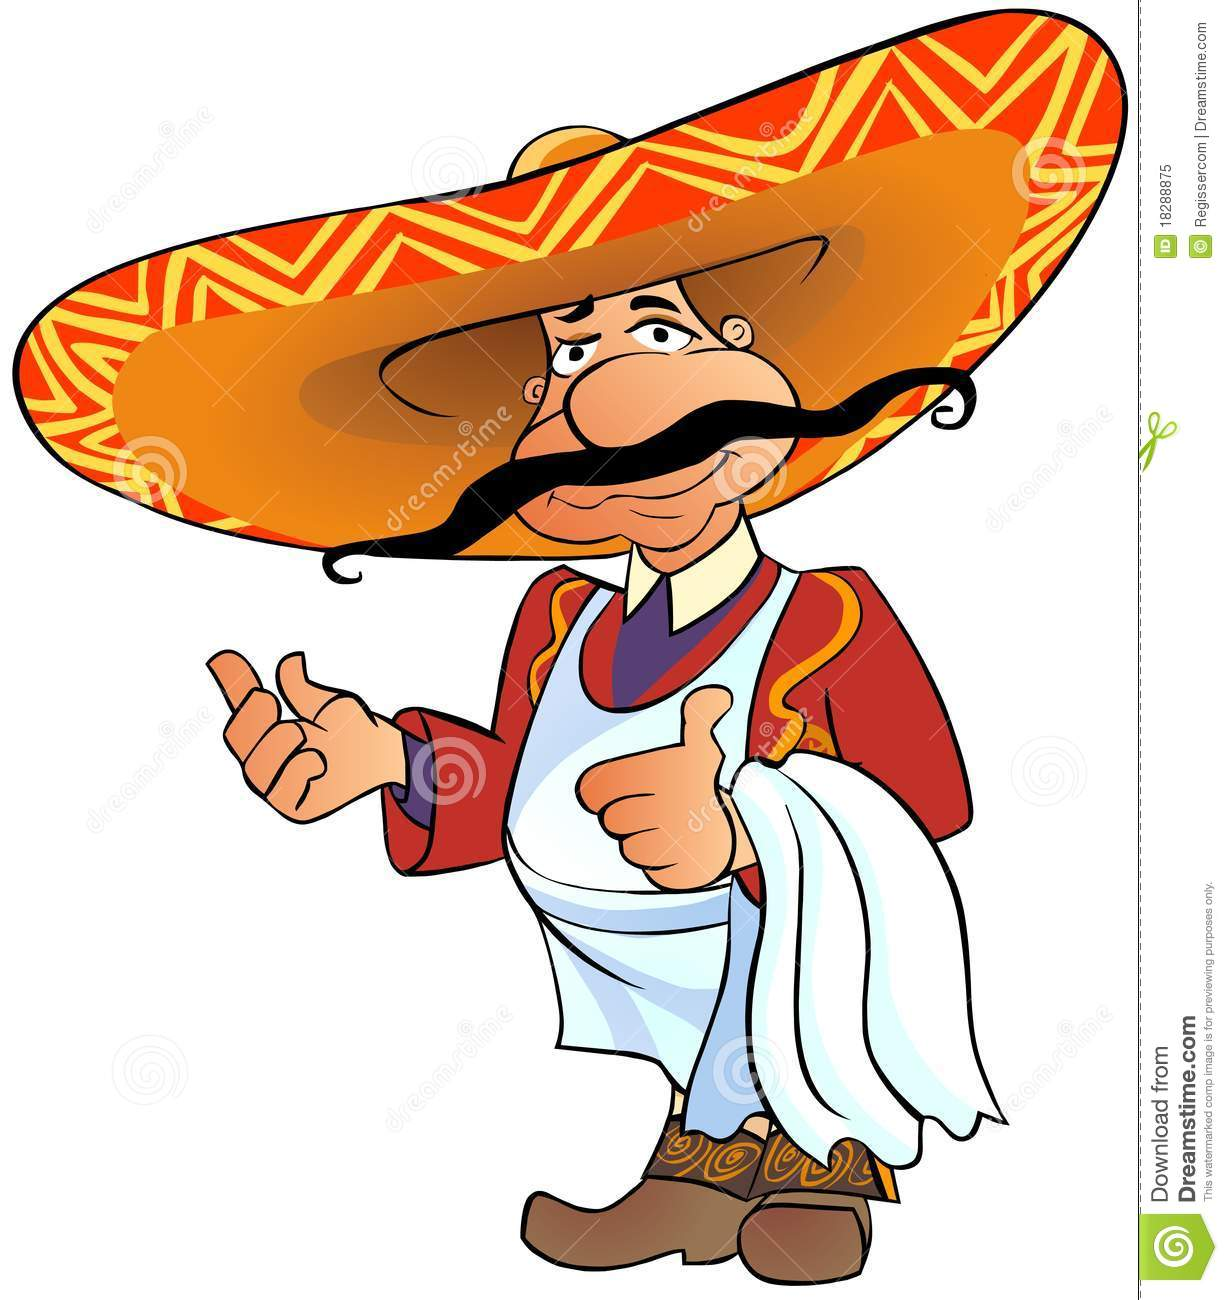 Mexican Chef With Thumb Up. Royalty Free Stock Photo - Image: 18288875